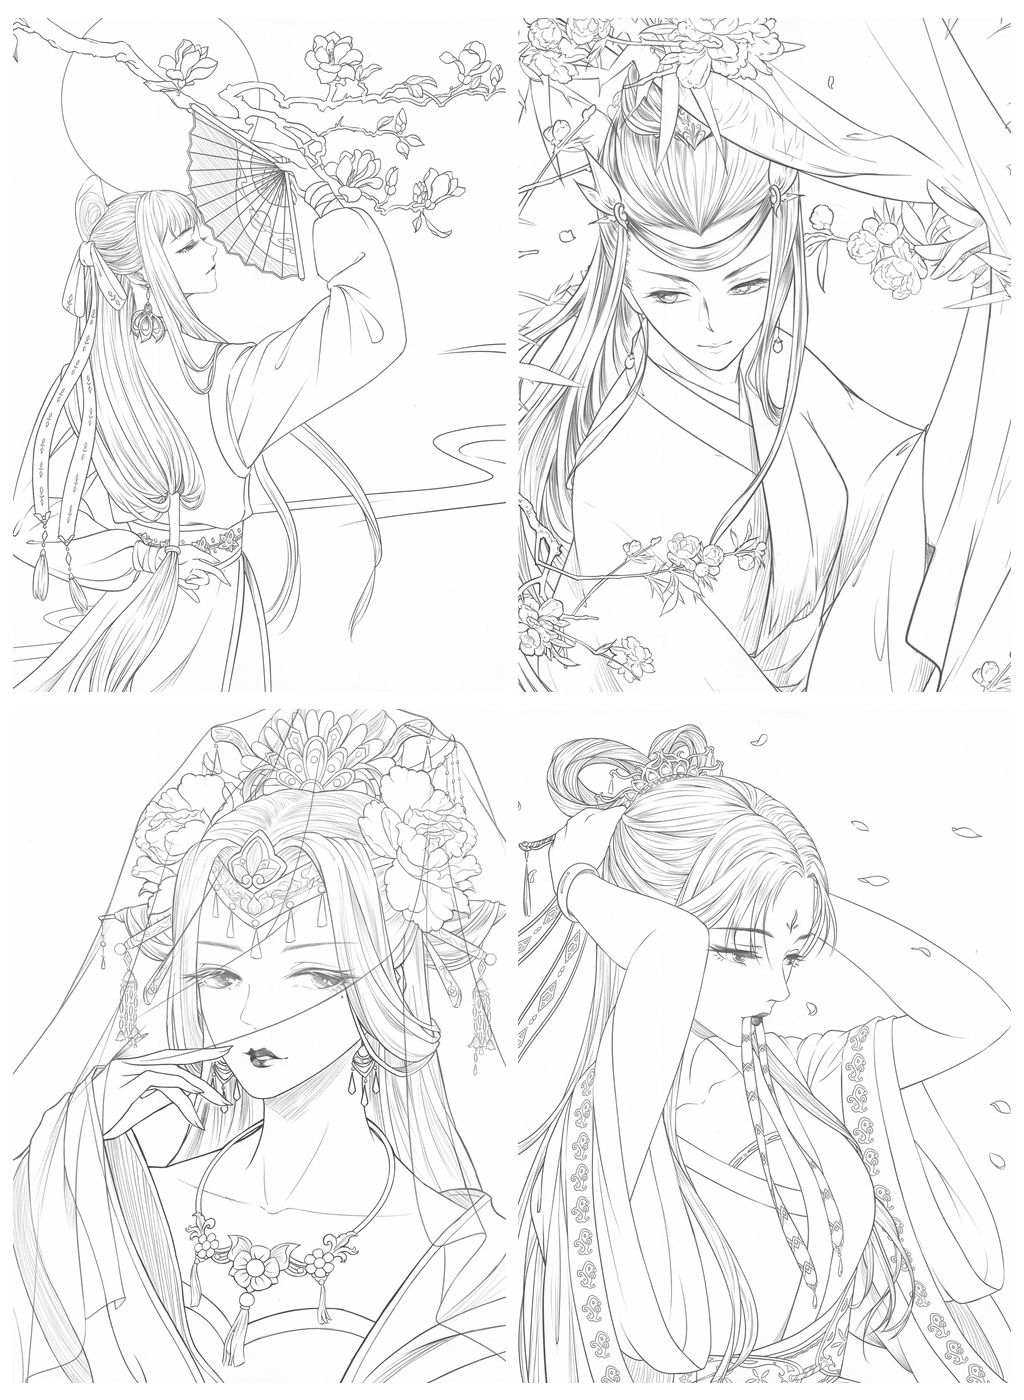 Chinese Classic Portrait Coloring Book Vol.1 Kayliebooks